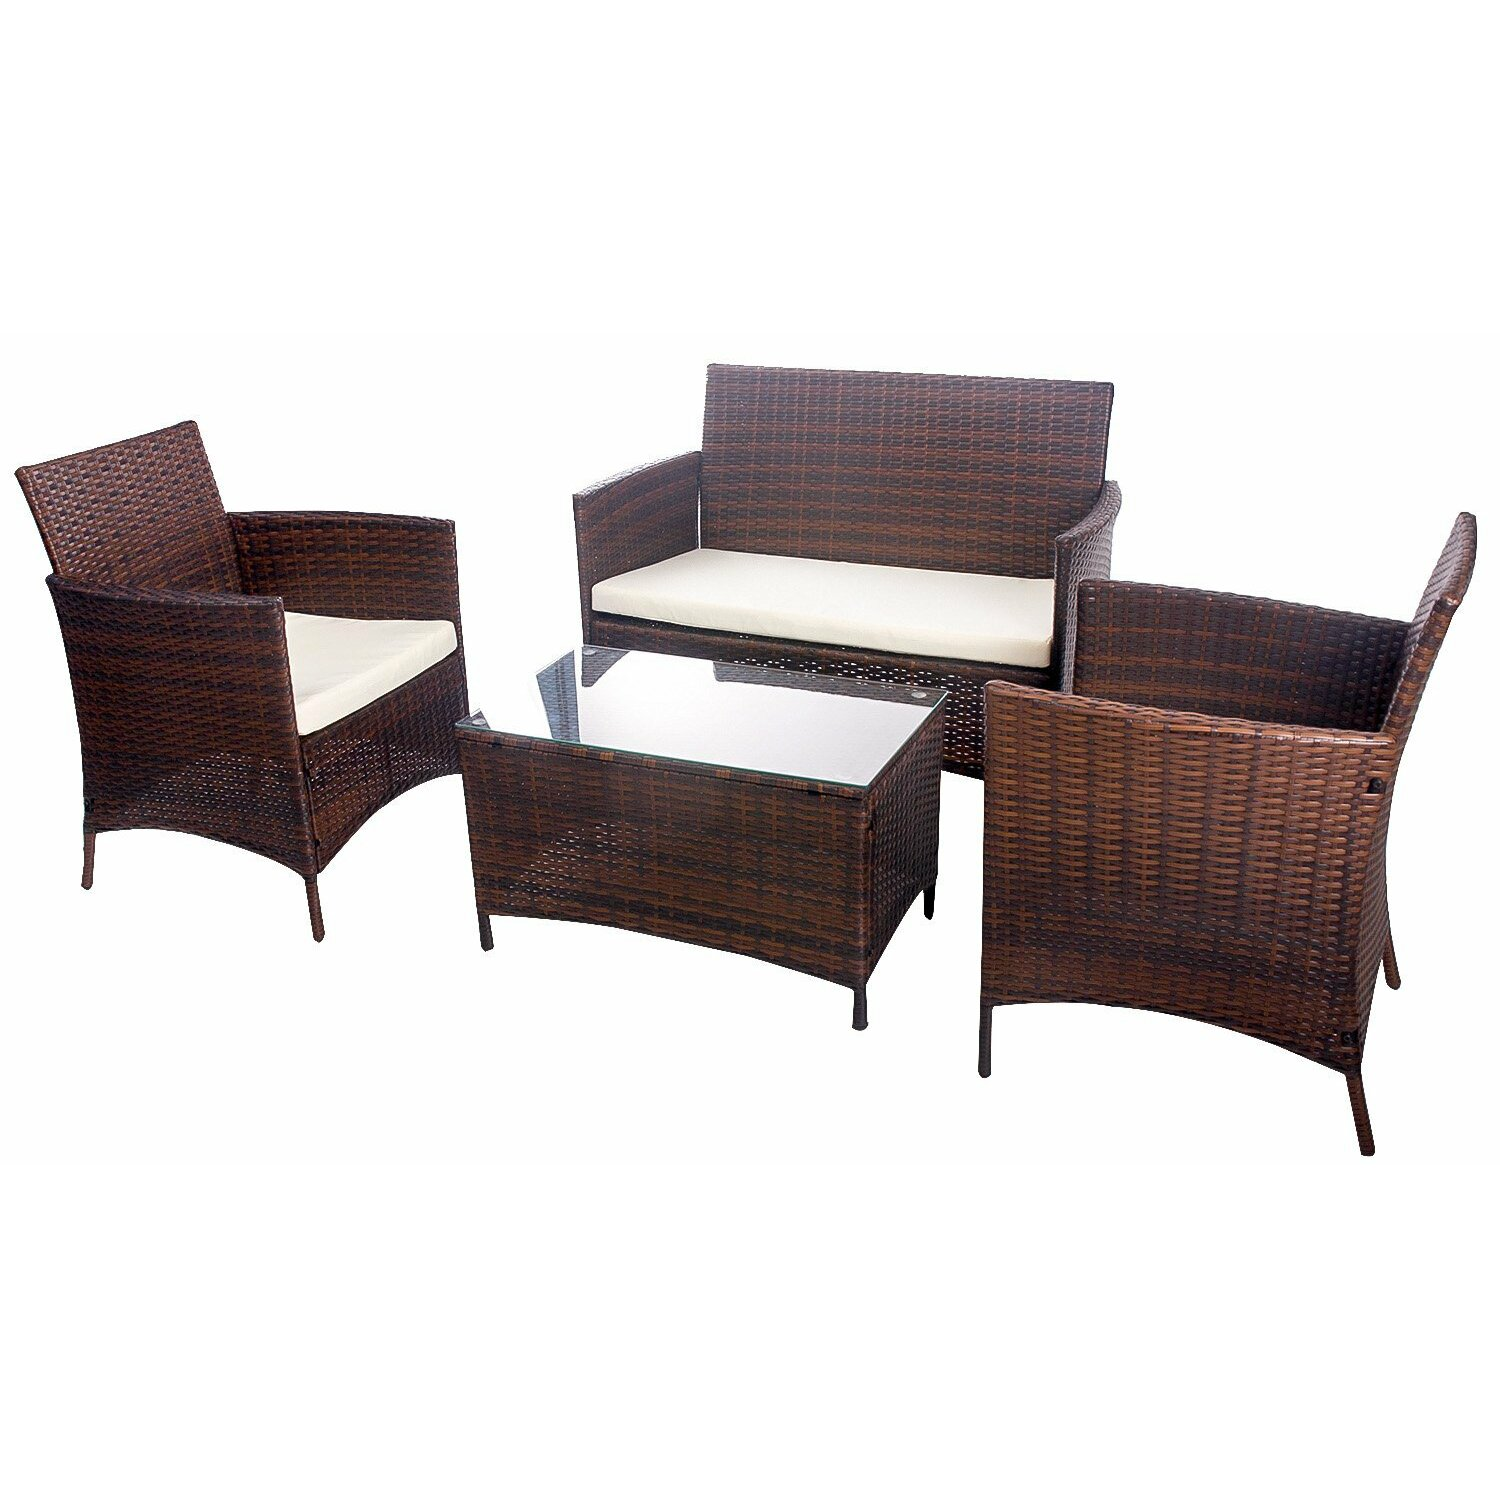 Merax 4 piece deep seating group with cushion reviews for Outdoor furniture reviews